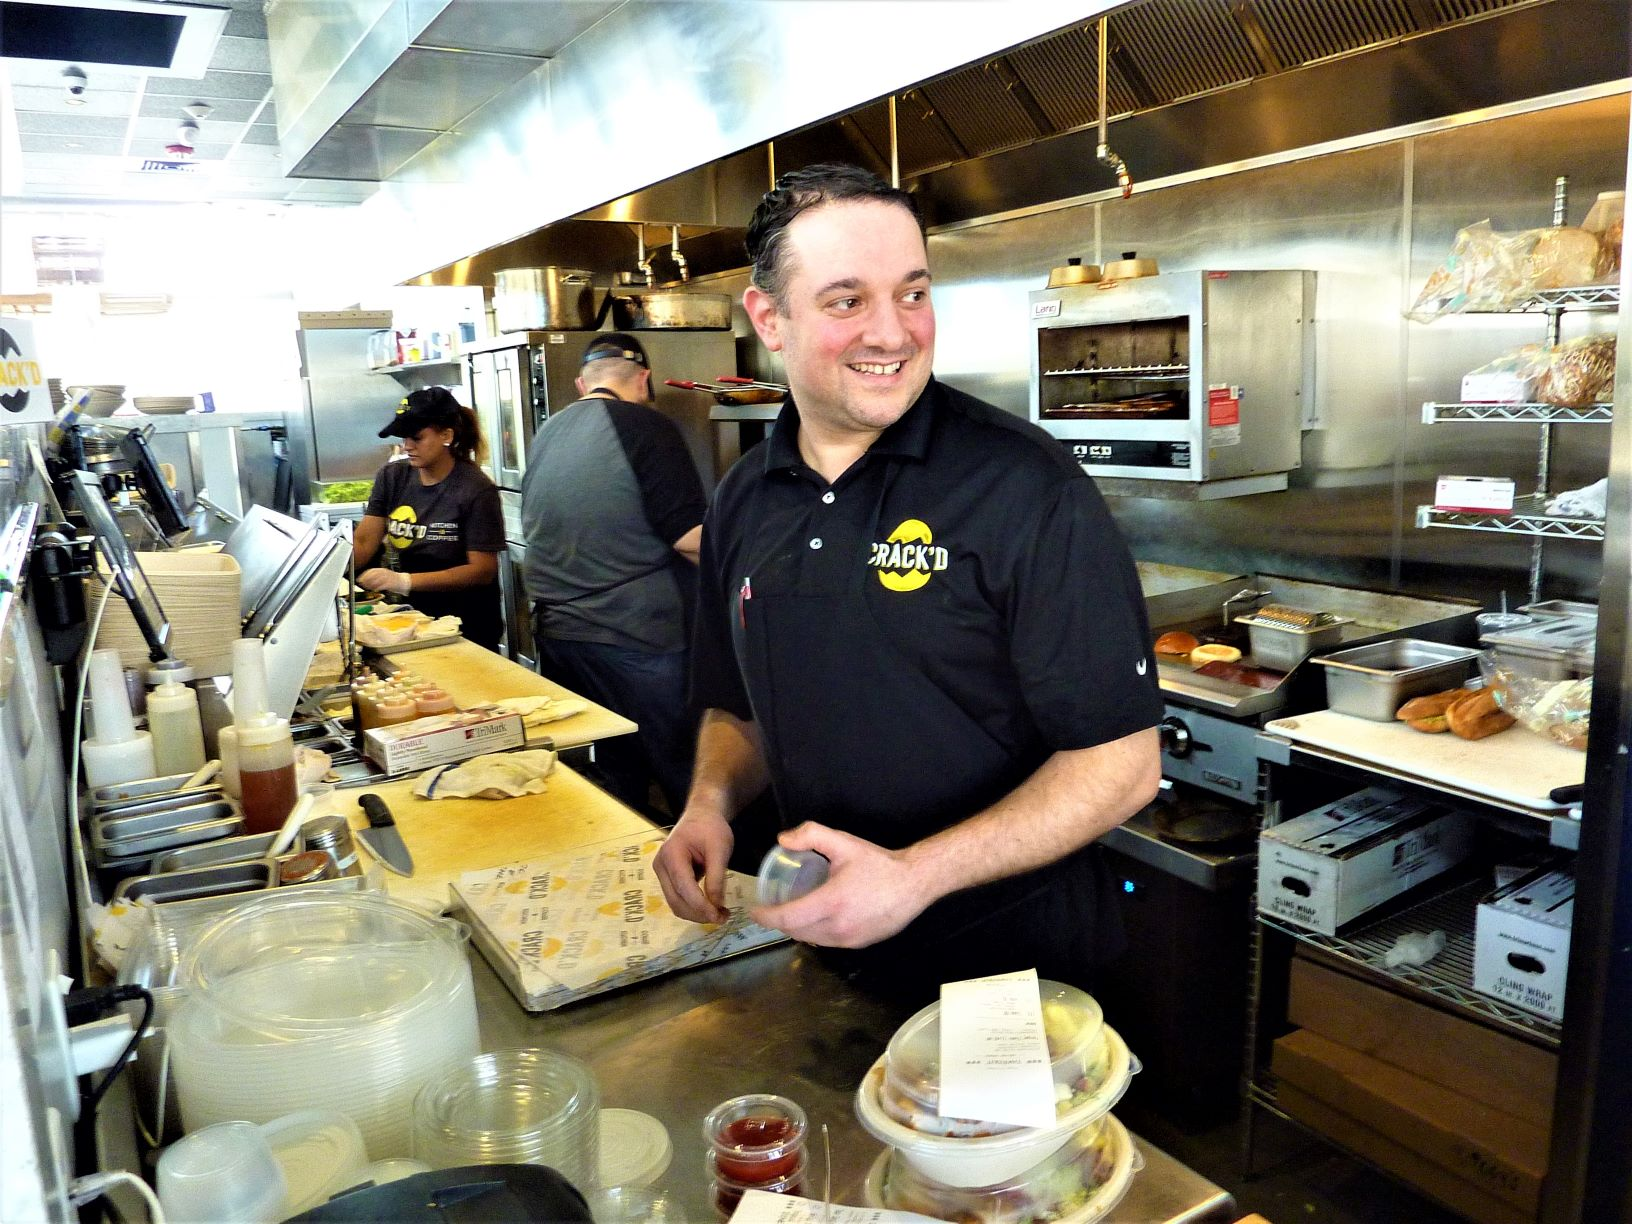 CRACK'D co-founder Danny Azzarello works the kitchen at his restaurant in Andover, Mass.